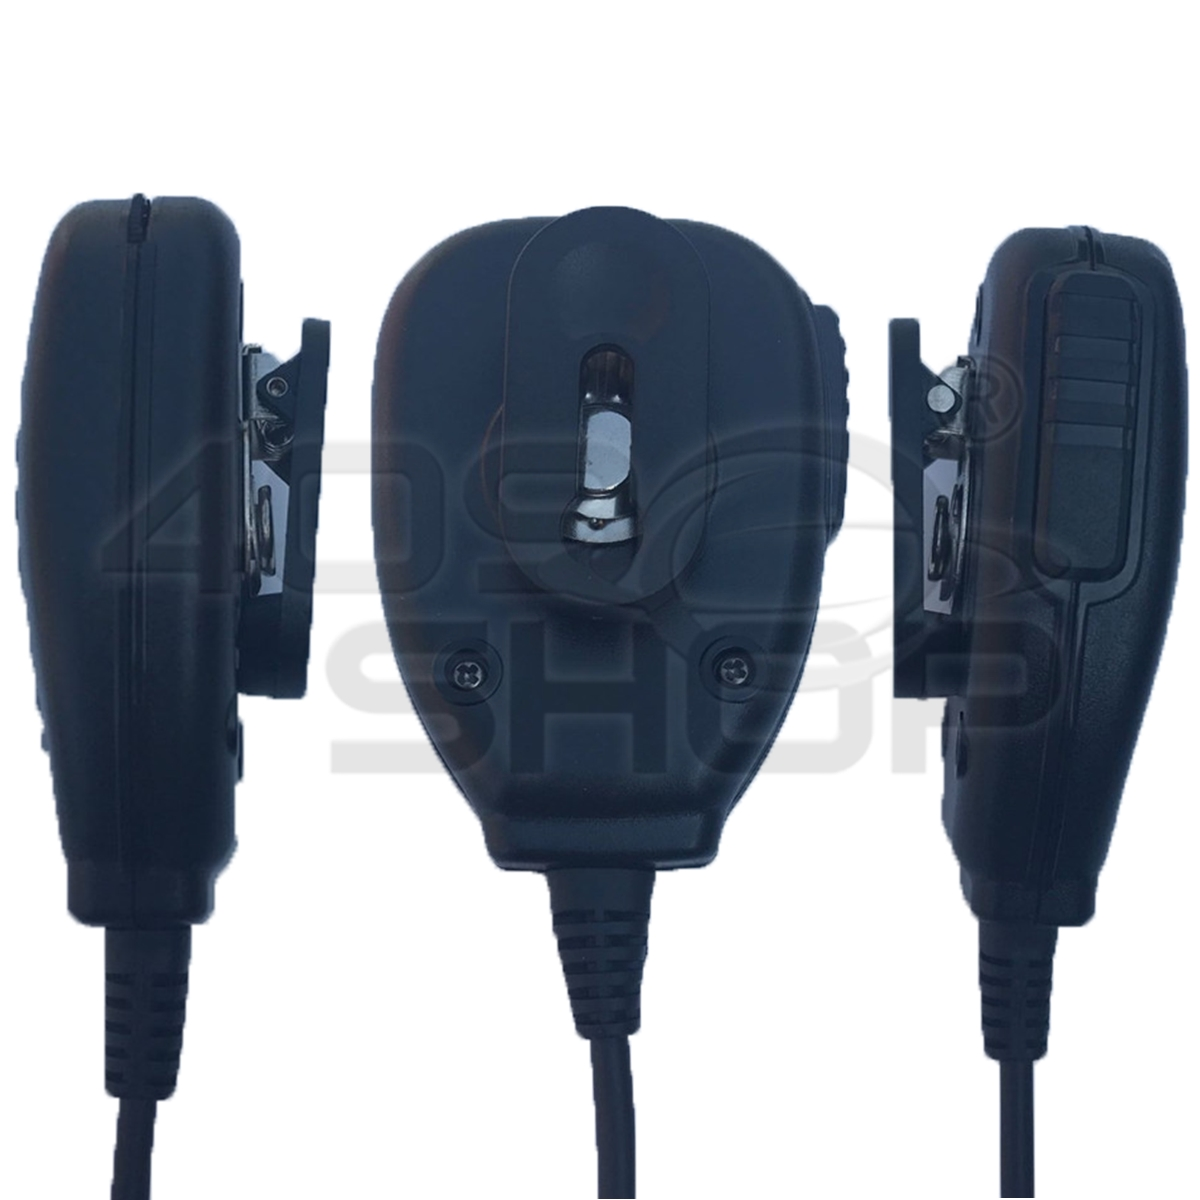 JIYKR PTT Speaker Microphone FOR KENWOOD BAOFENG walkie talkie